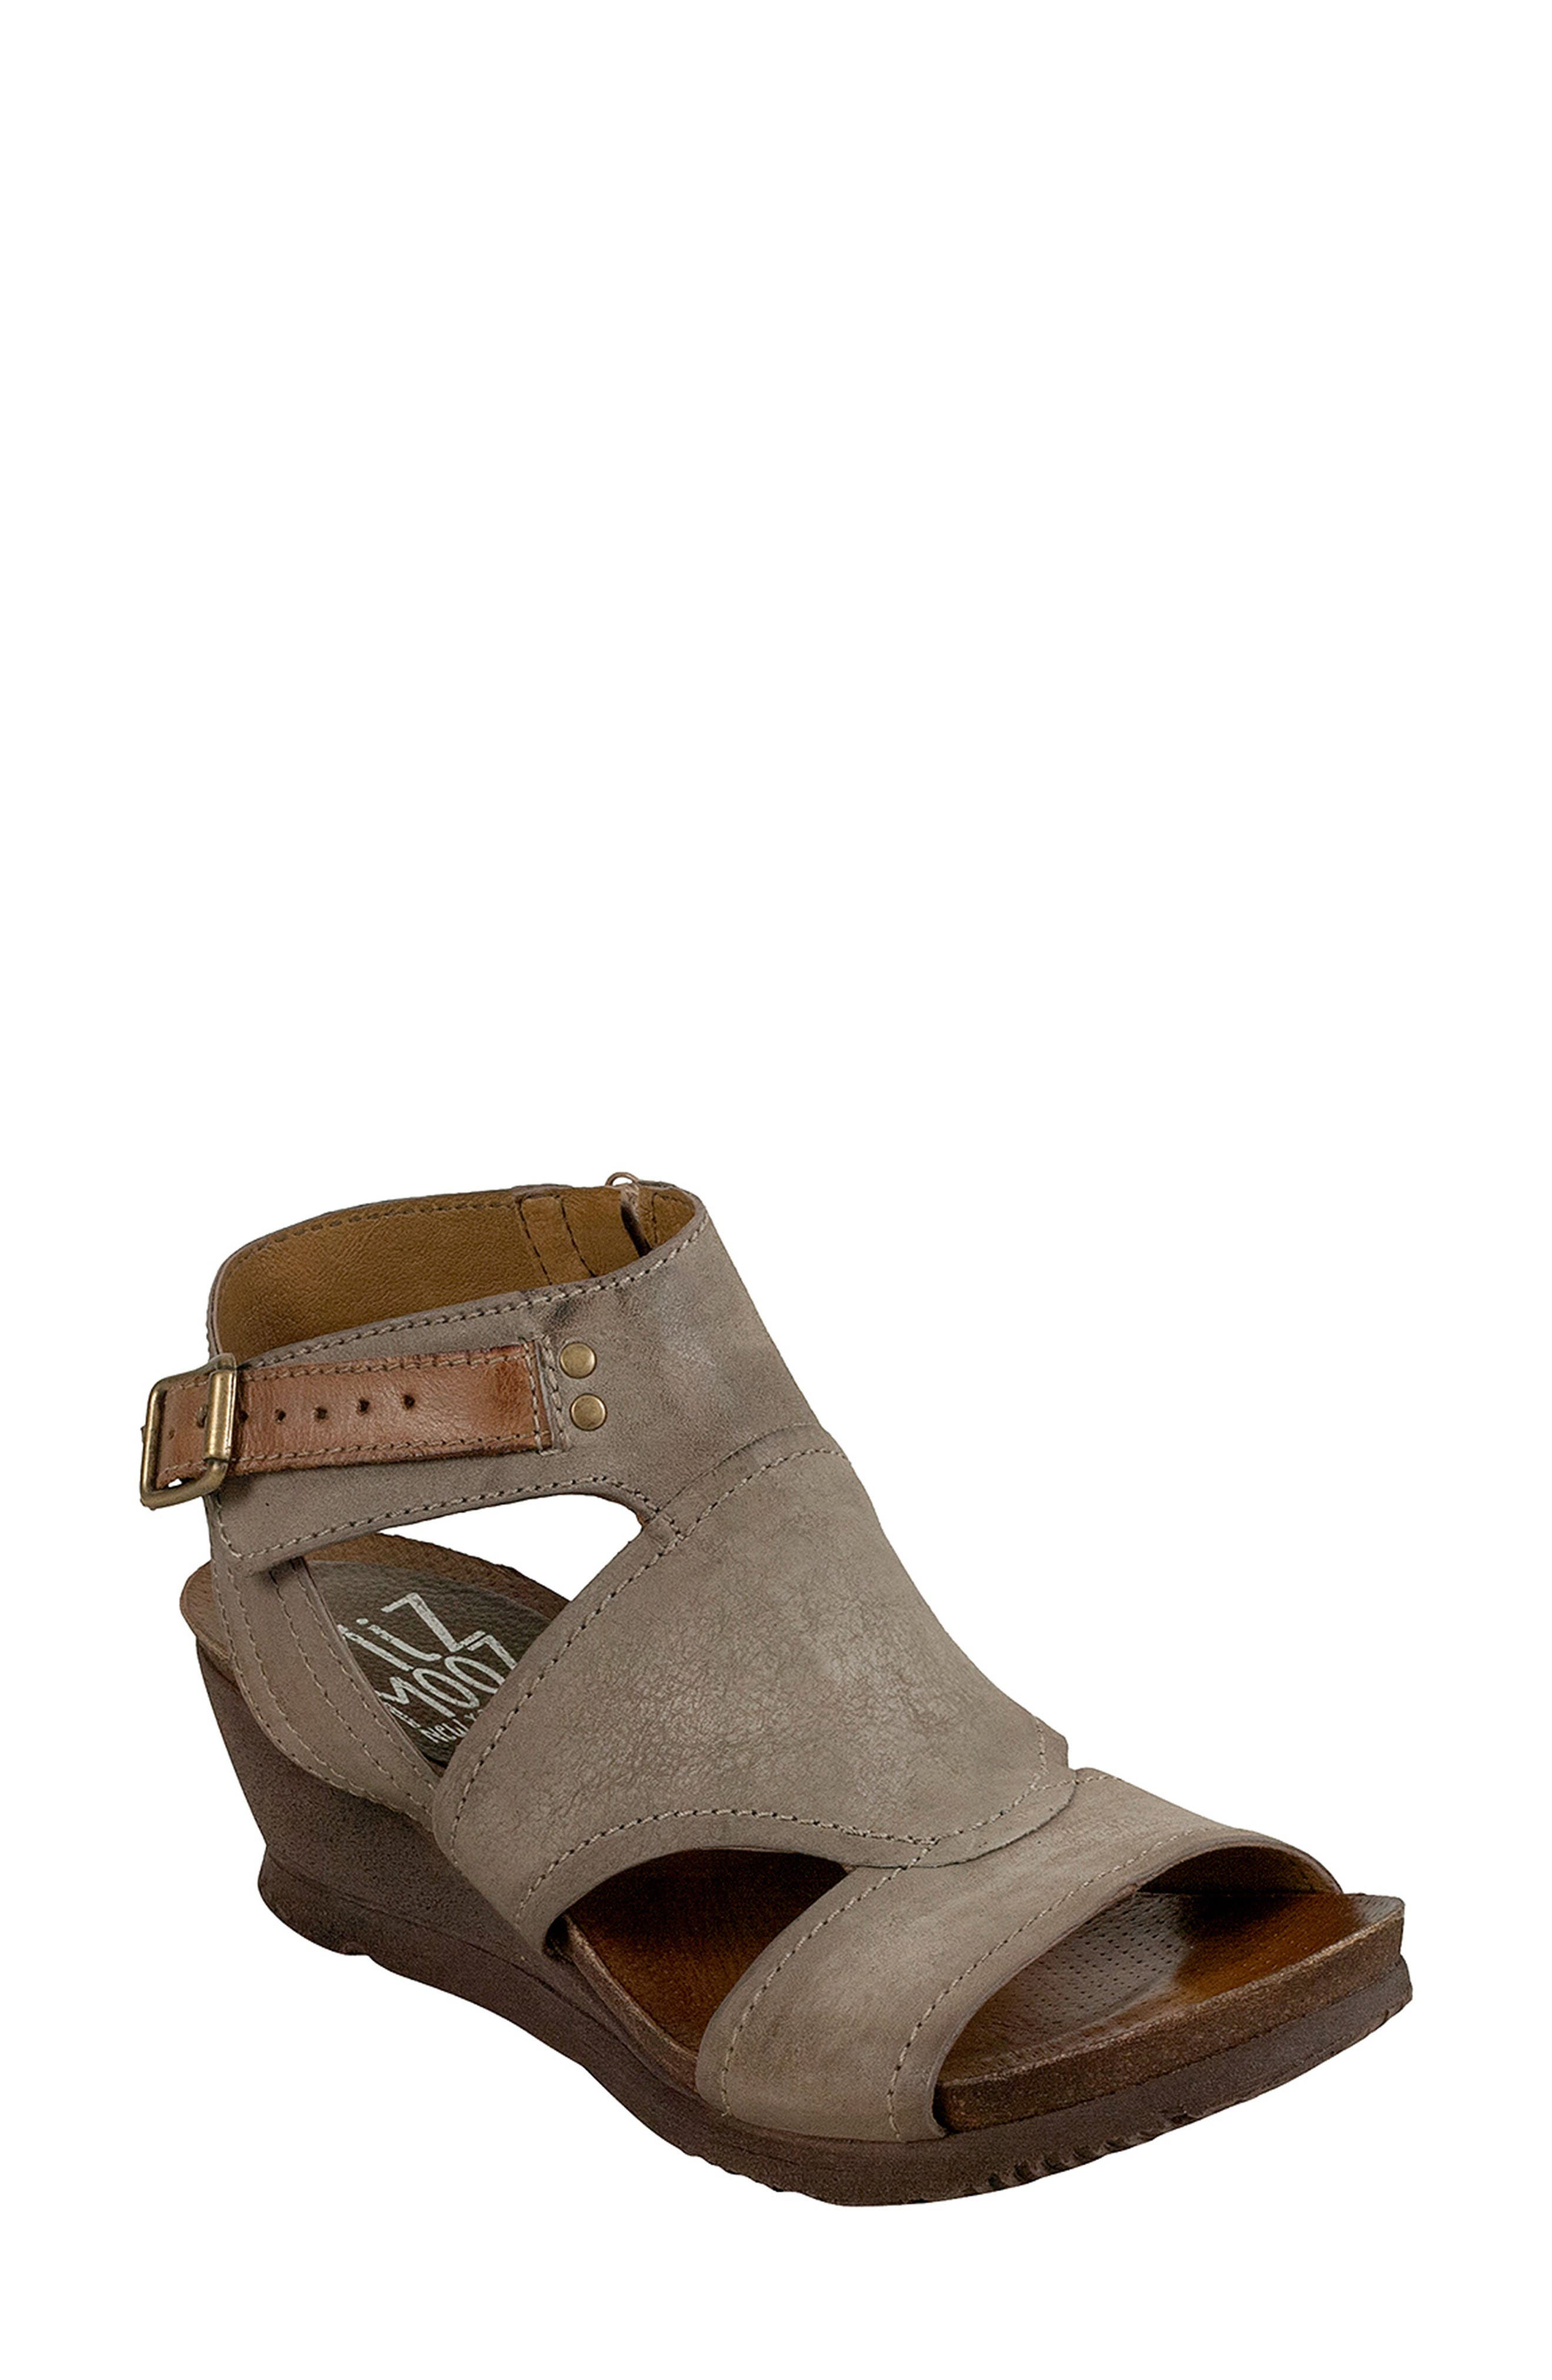 Scout Wedge Sandal,                         Main,                         color, Pebble Leather